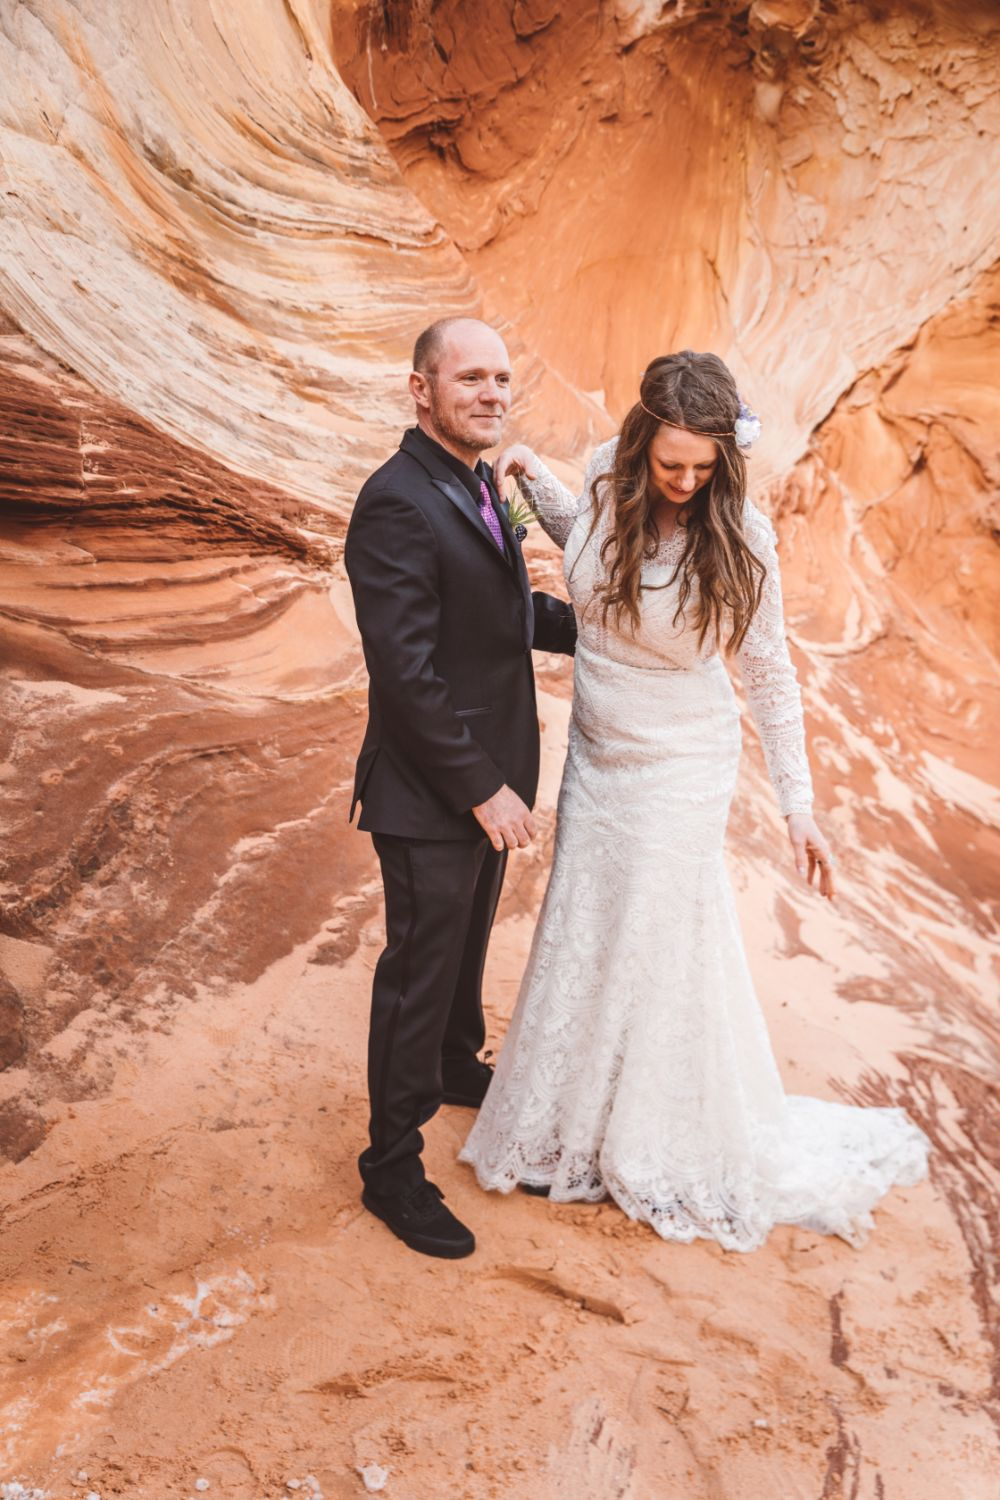 groom-bride-walk-desert-sandstone